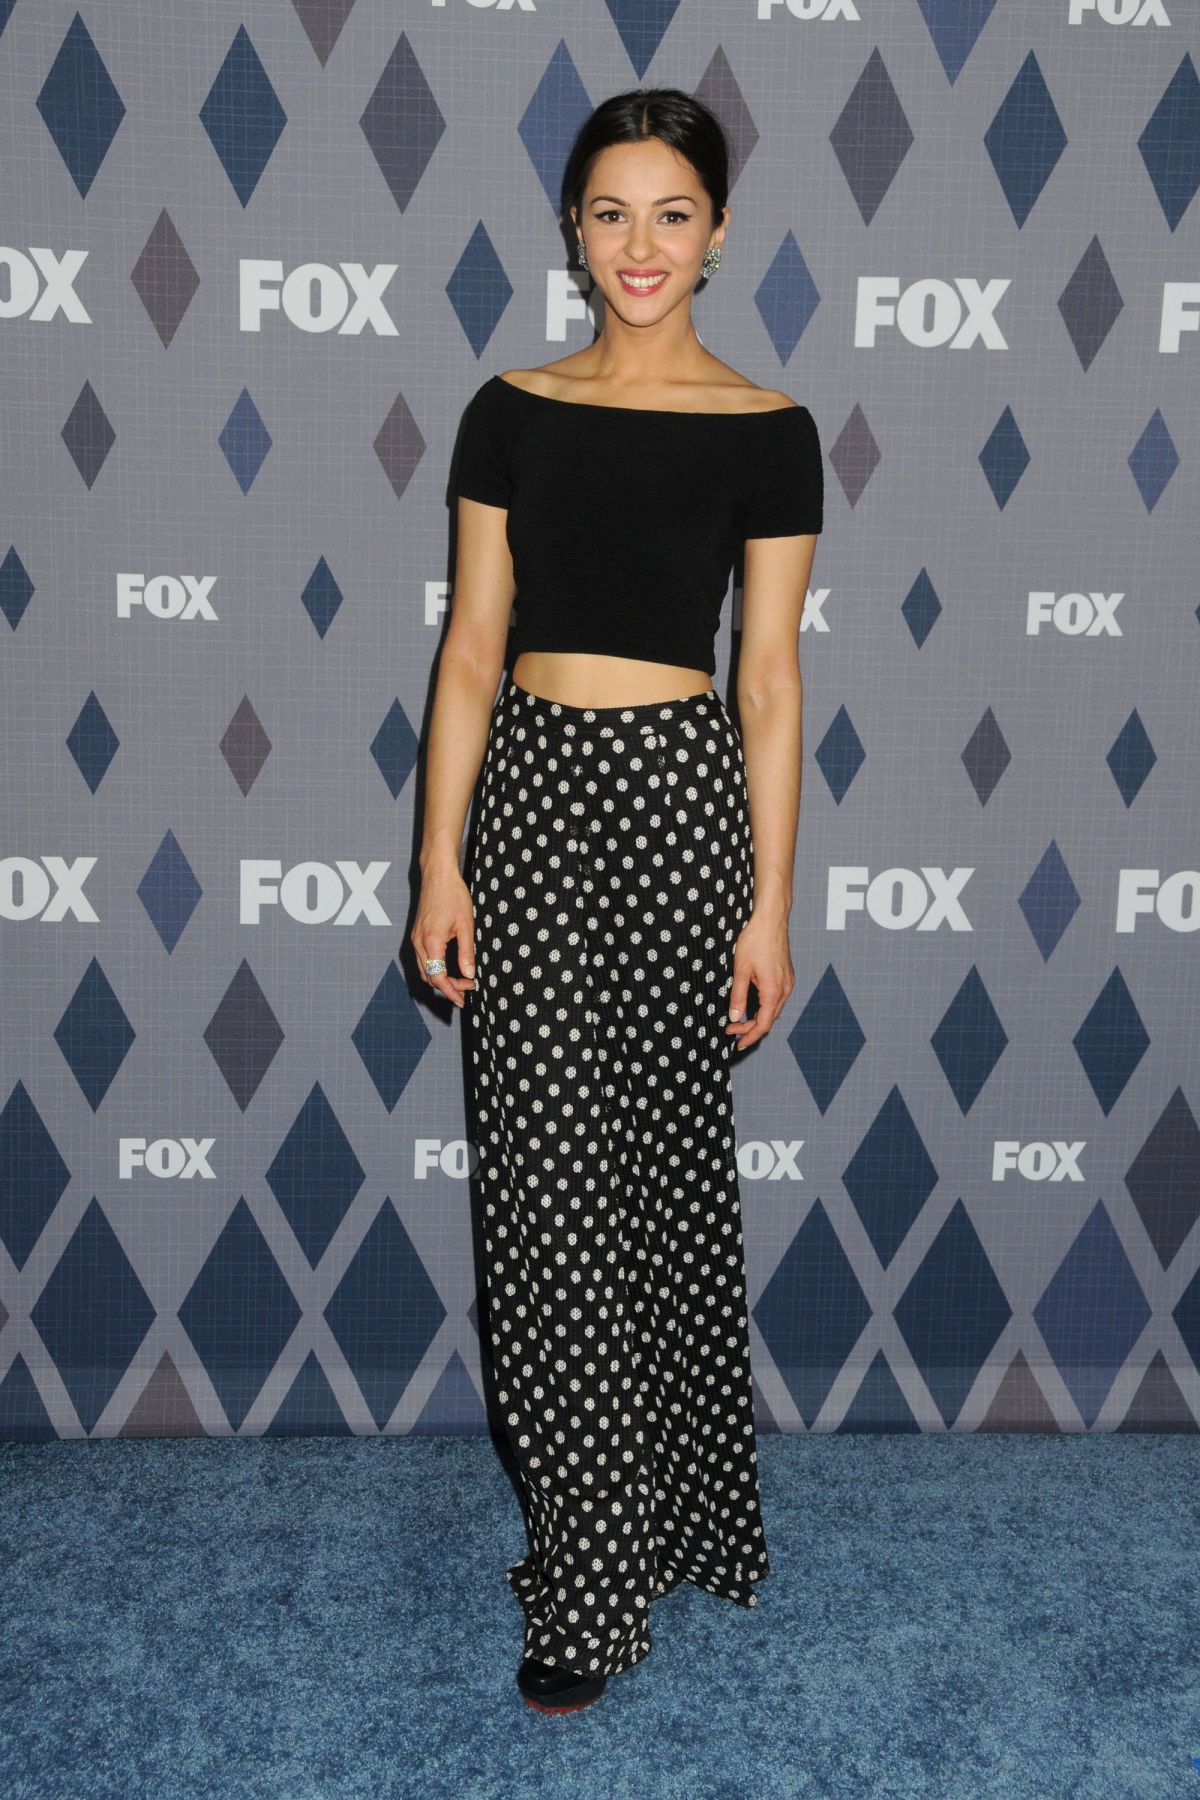 ANNET MAHENDRU at Fox Winter TCA 2016 All-star Party in Pasadena 01/15/2016